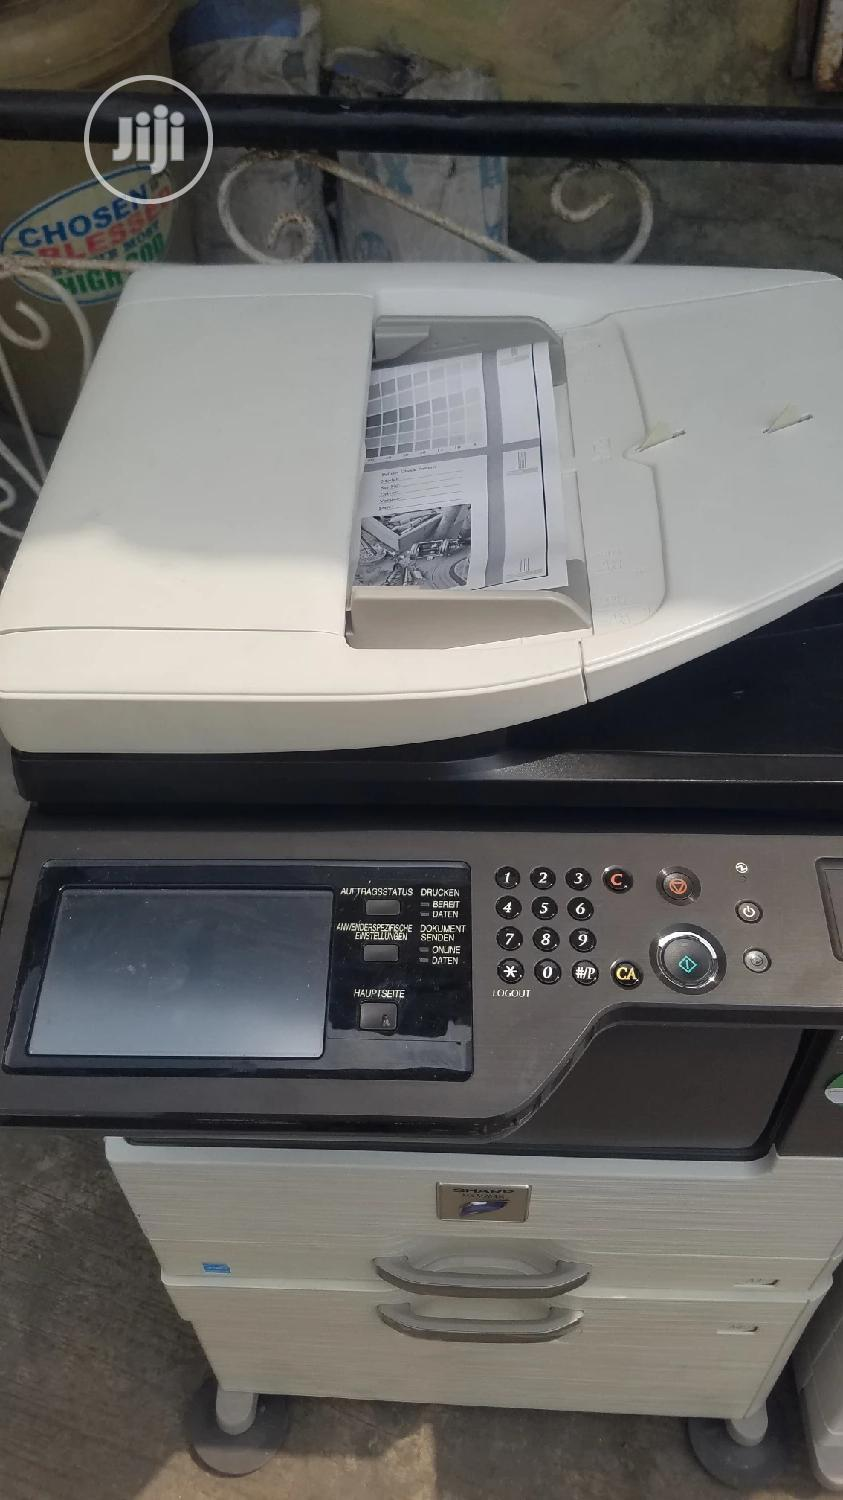 Sharp Mx 264N | Printers & Scanners for sale in Surulere, Lagos State, Nigeria